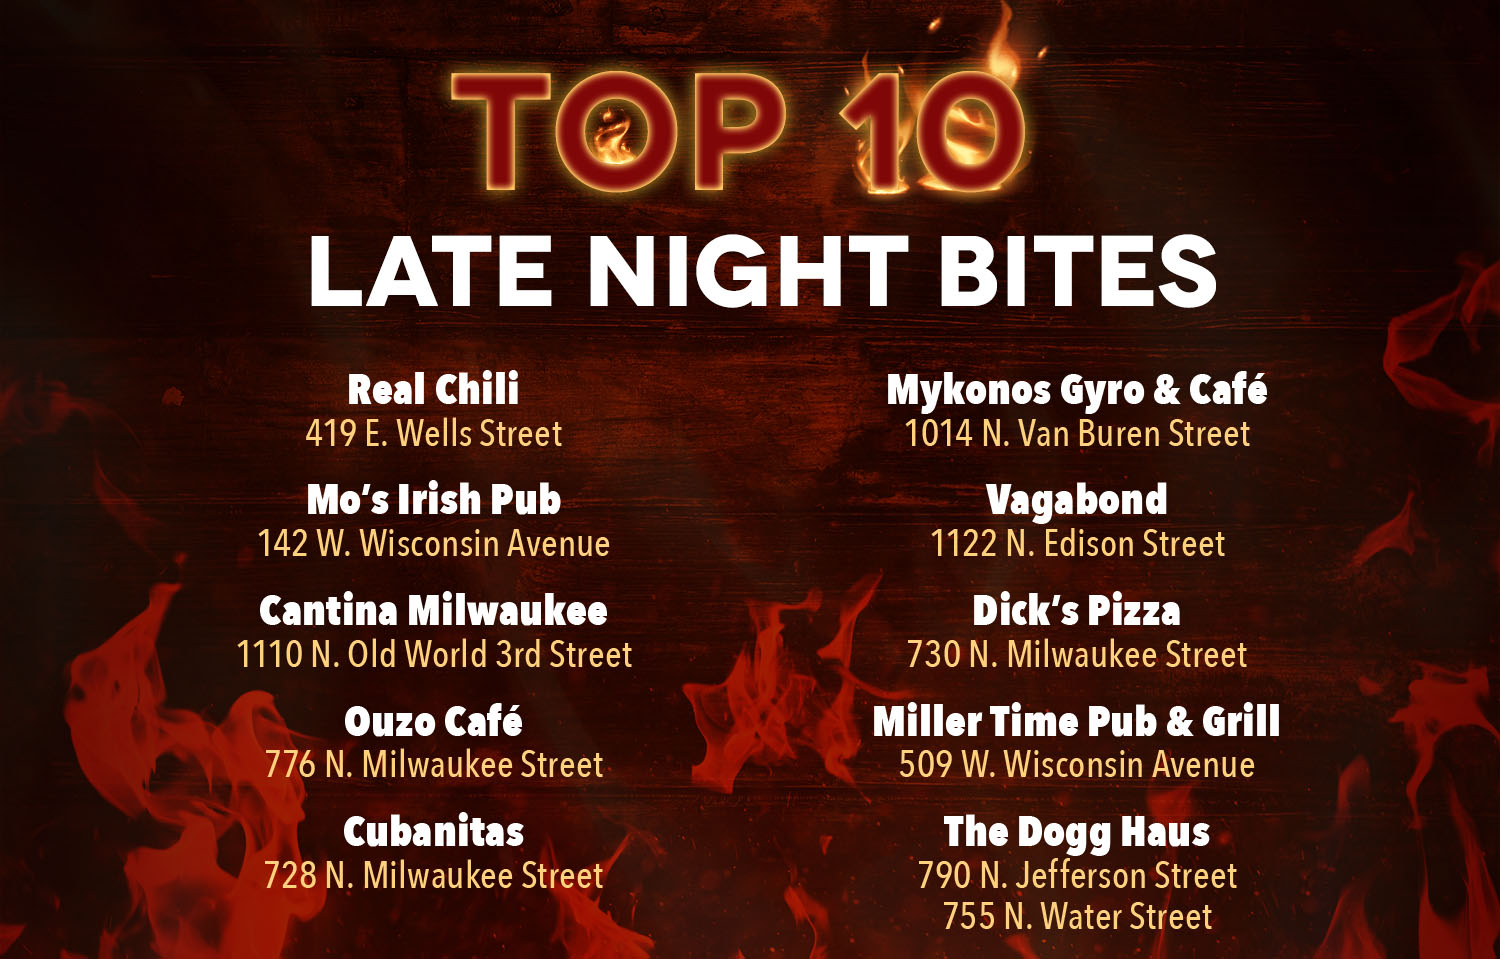 Milwaukee Downtown Top 10 Late Night Bites